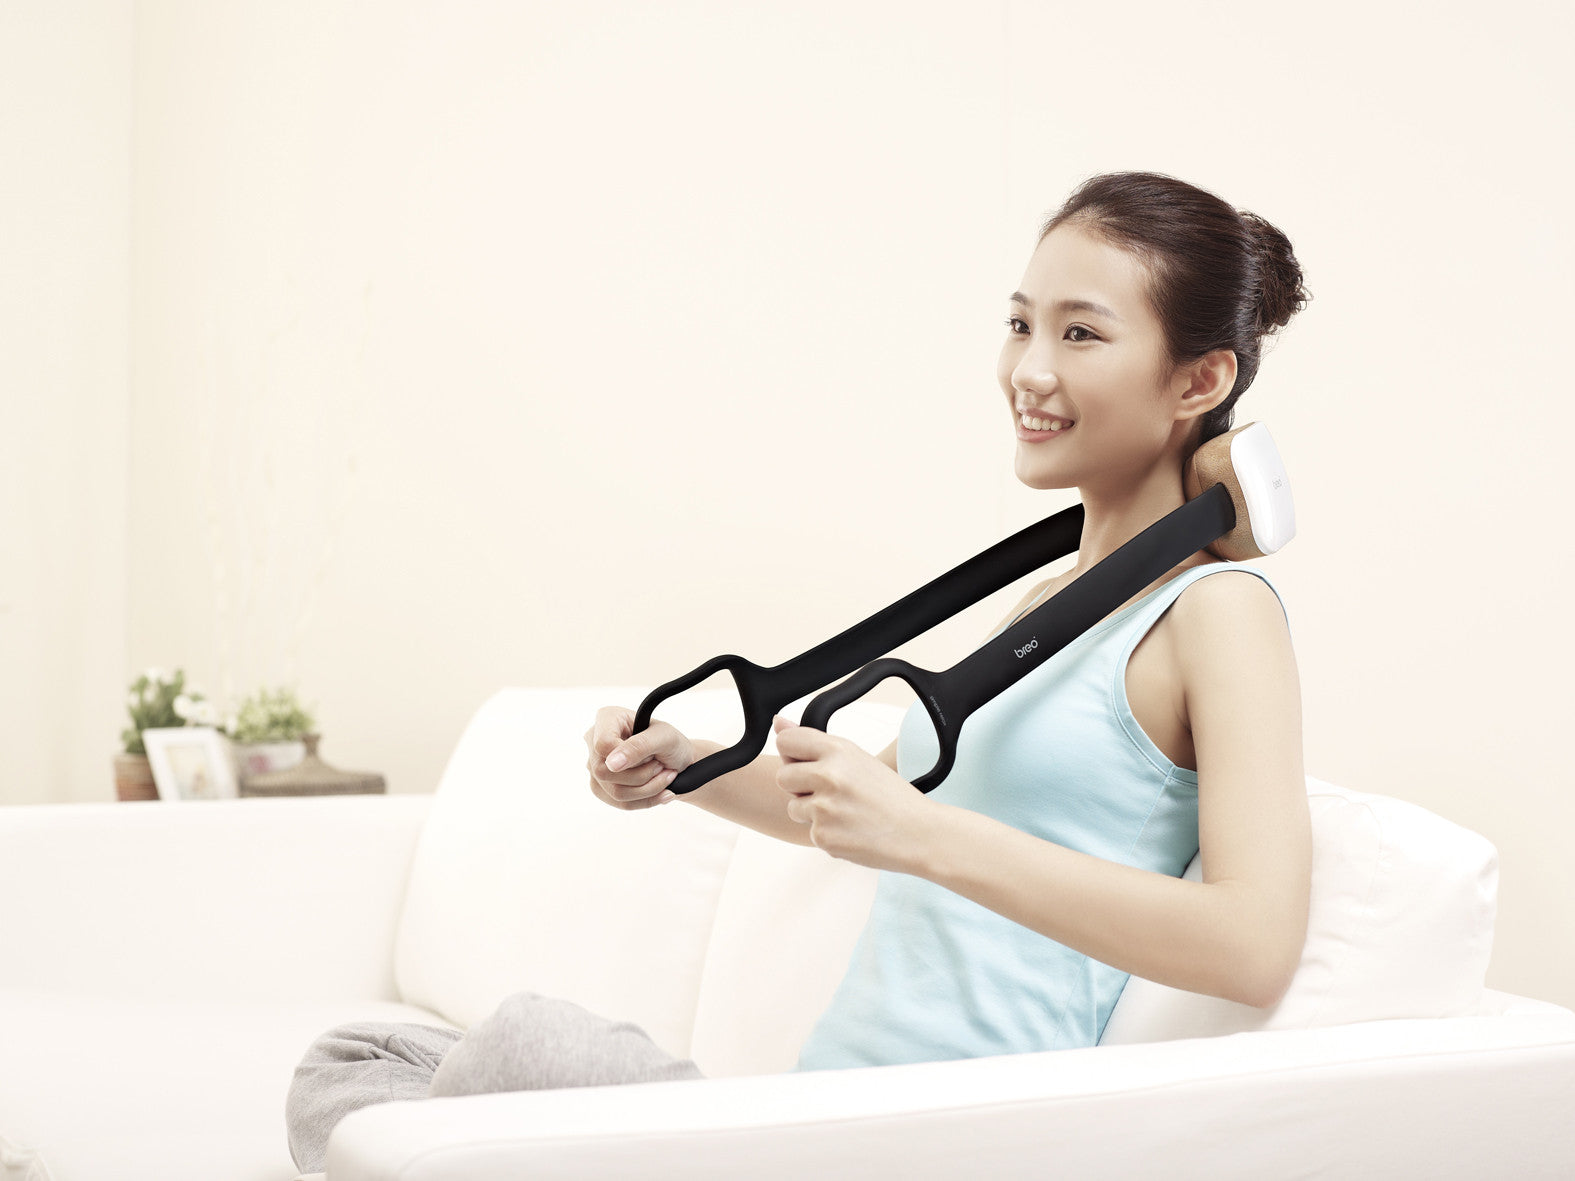 Breo iNeck2 Neck Massager - Breo-USA